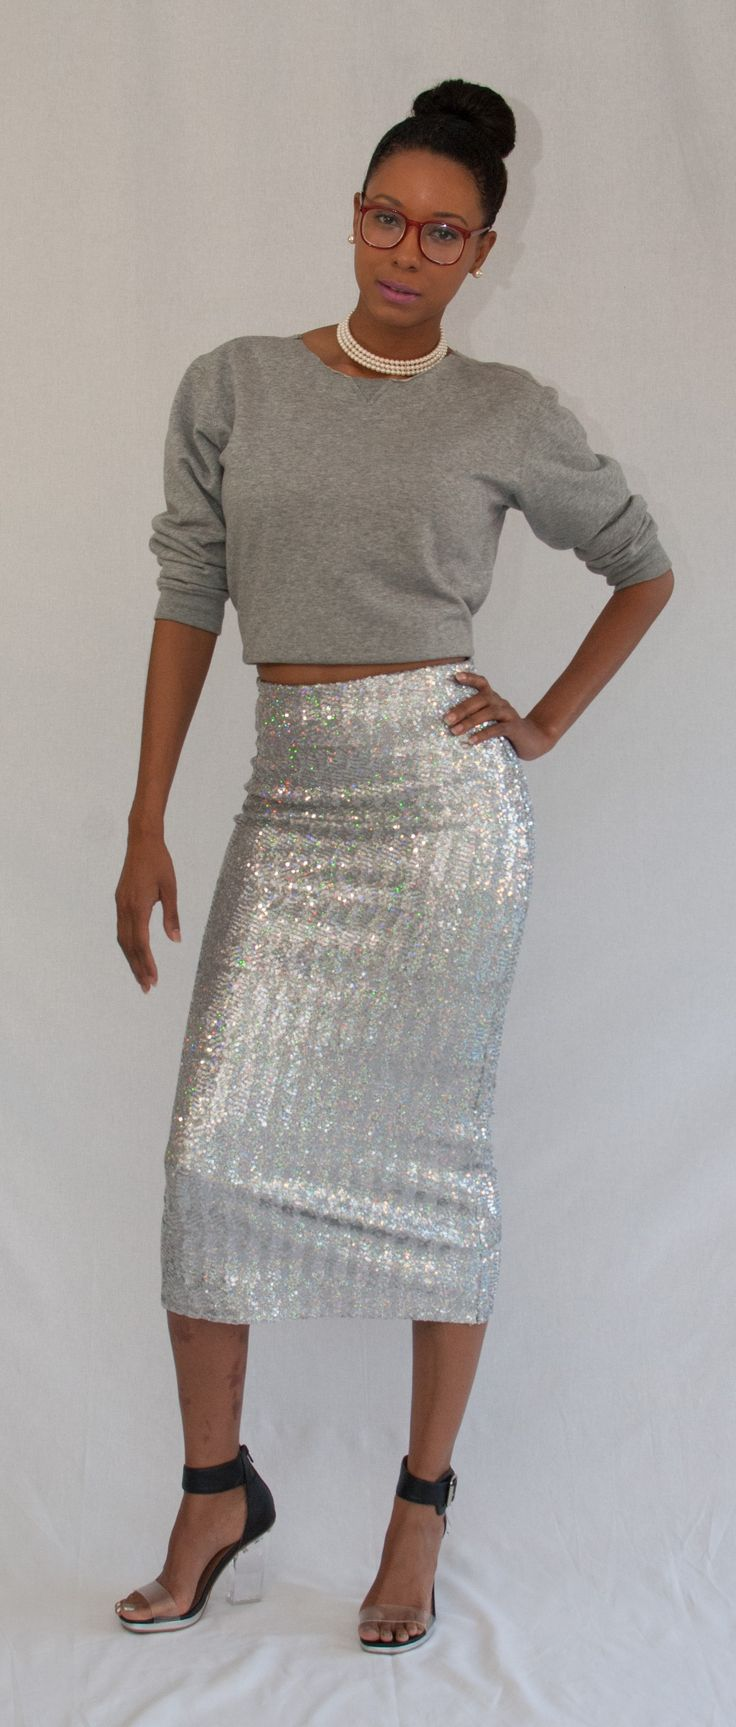 17 Best images about Inspired by Pinterest: Sequin Midi Skirt on ...